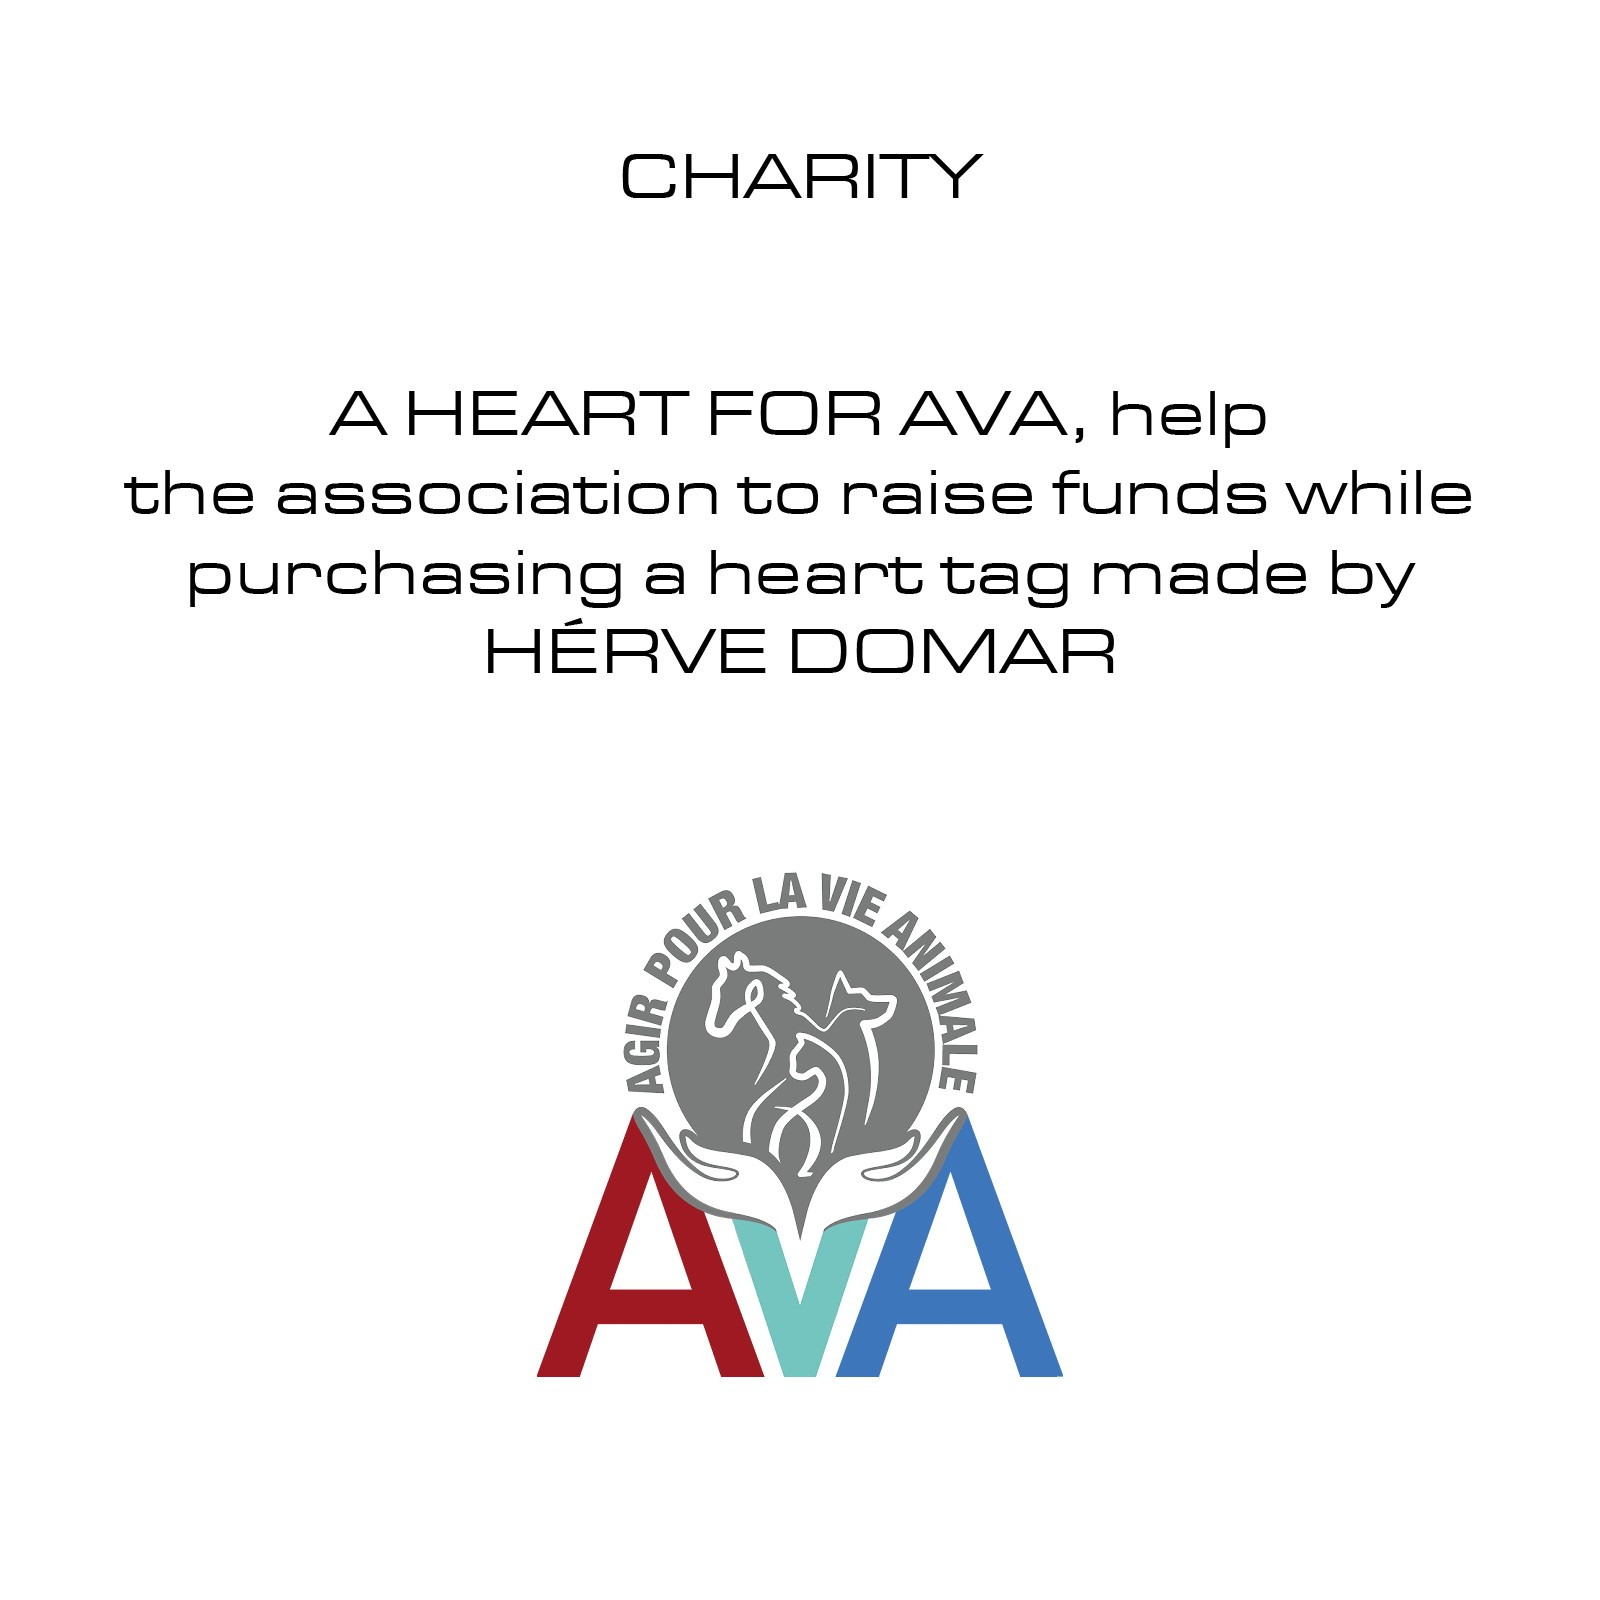 A HEART FOR AVA